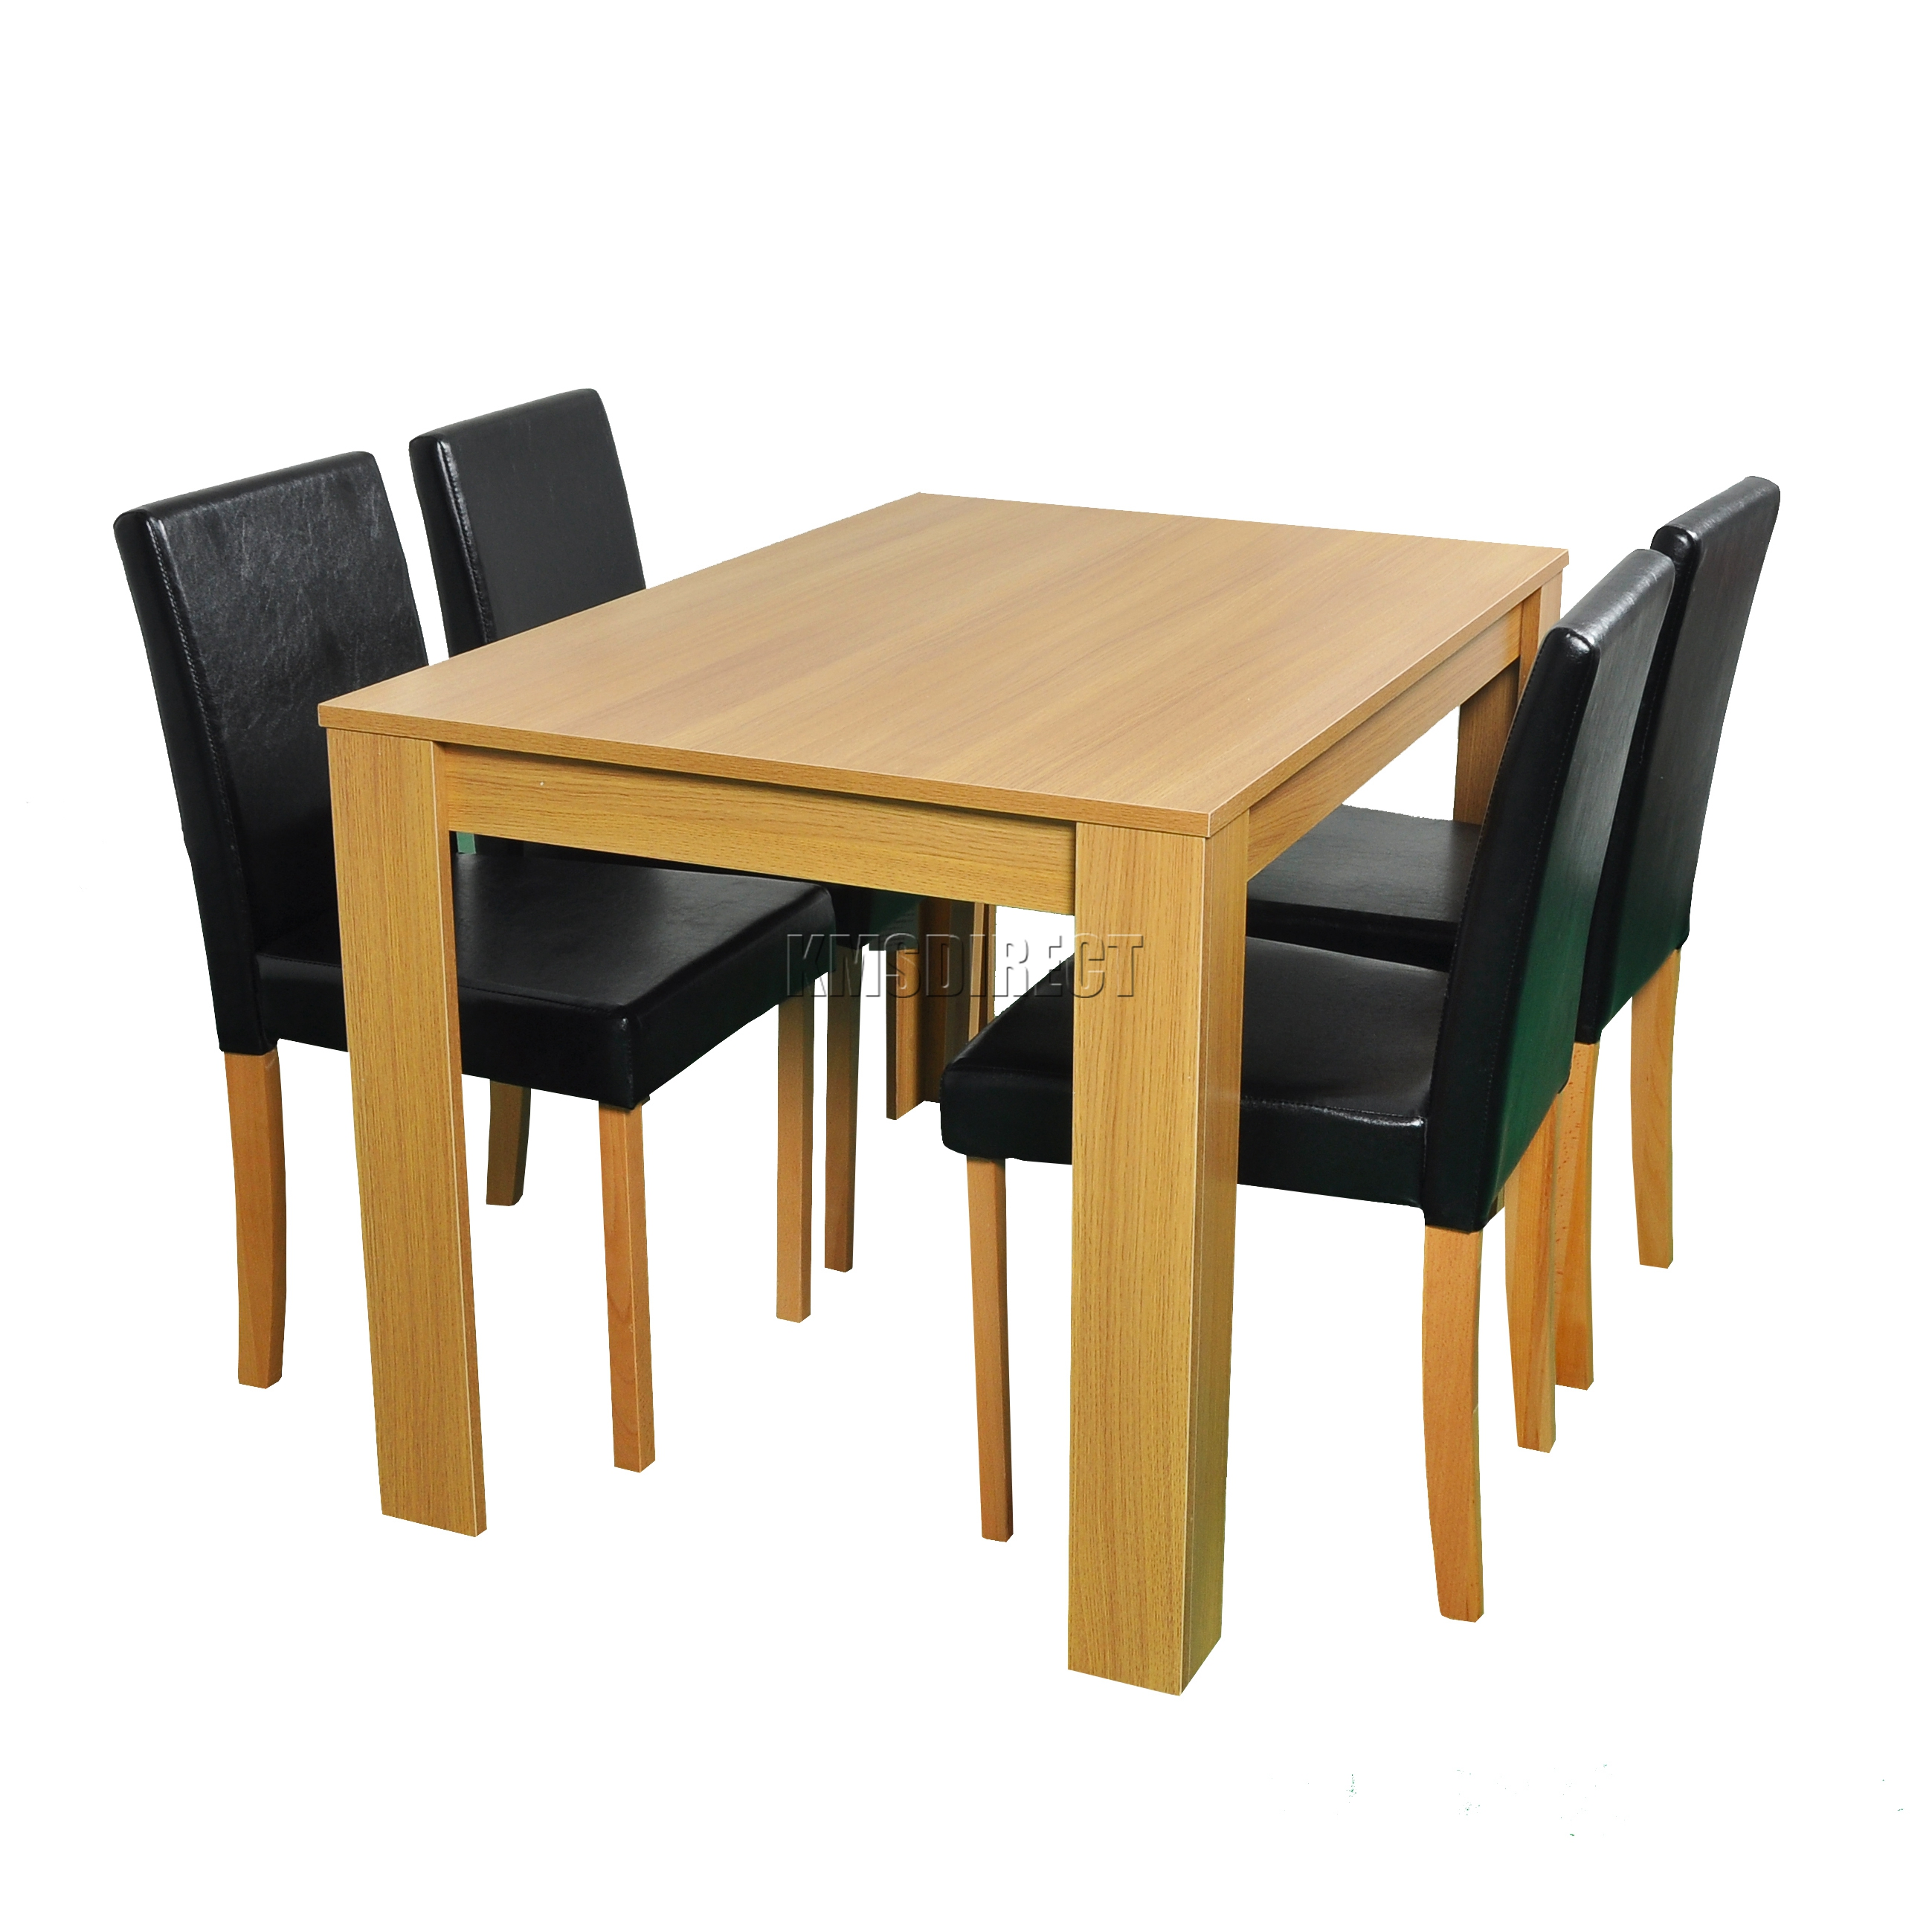 4 Dining Chairs Cheap: WestWood Wooden Dining Table And 4 PU Faux Leather Chairs